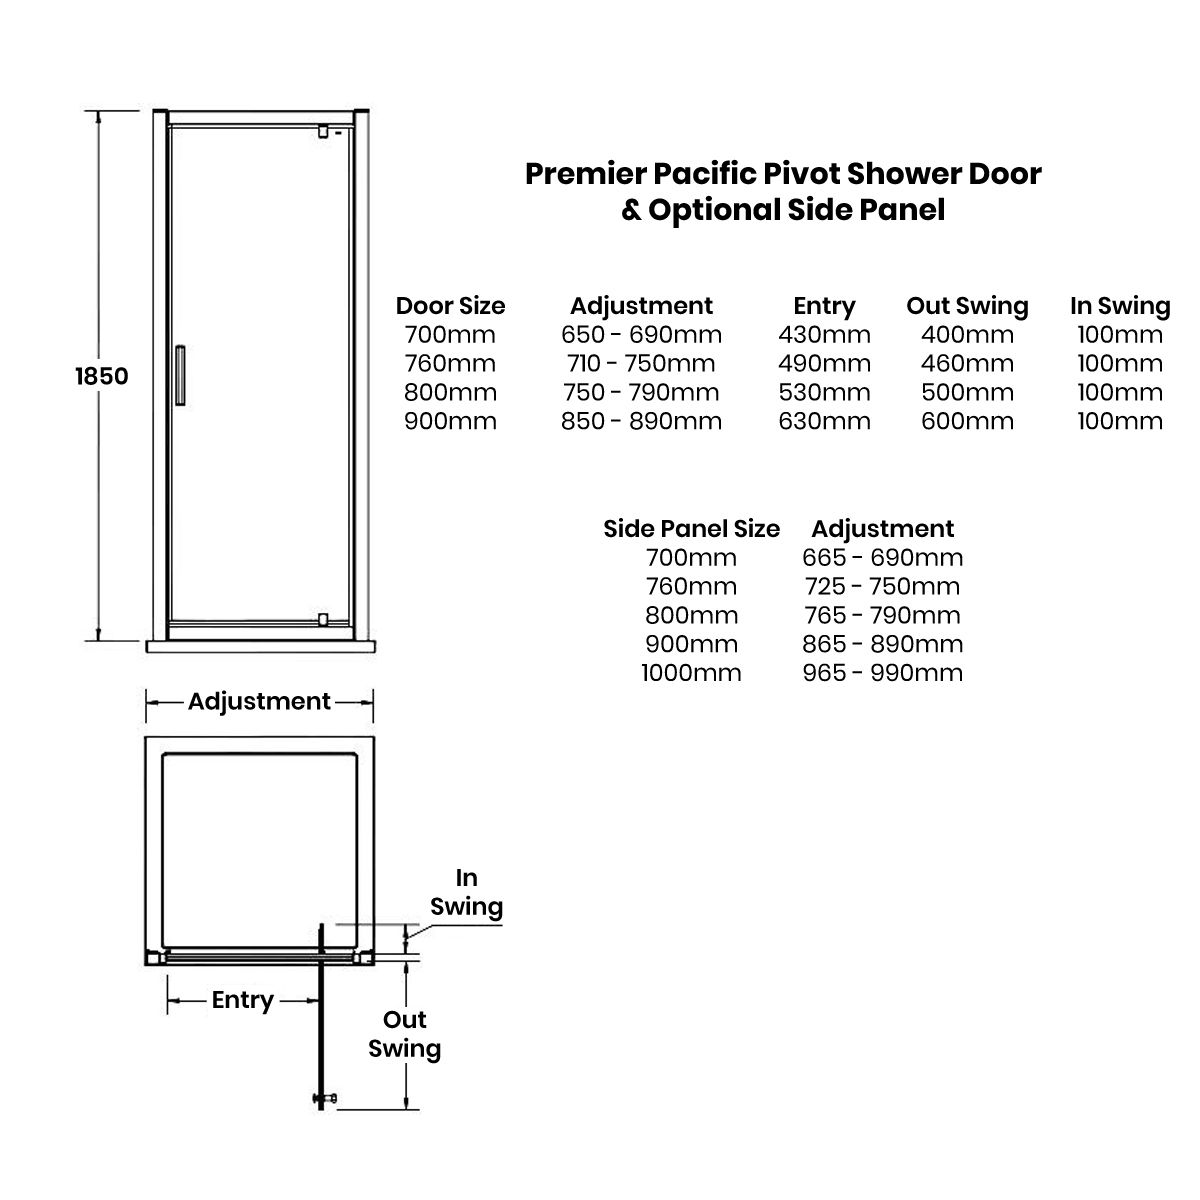 Premier Pacific Pivot Shower Enclosure Dimensions